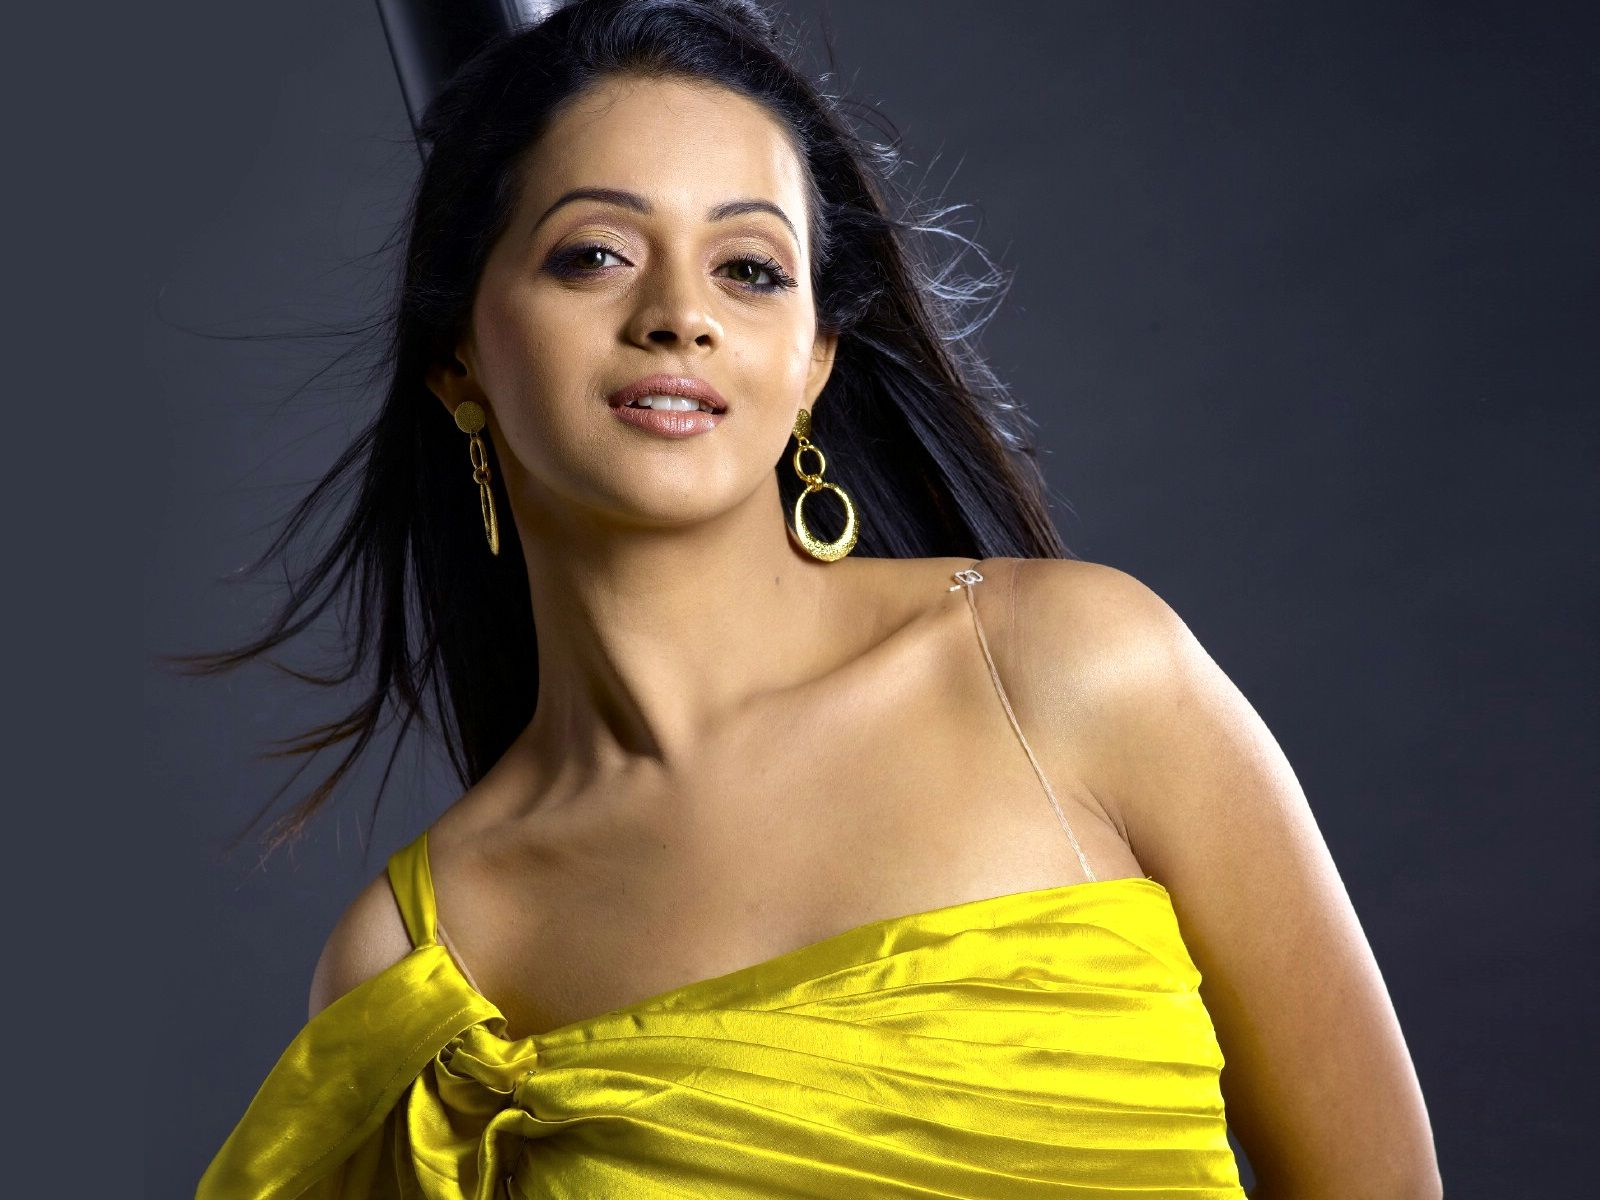 Tamil Actress Bhavana Photos: Pin By Super HD Wallpapers On HD Wallpapers